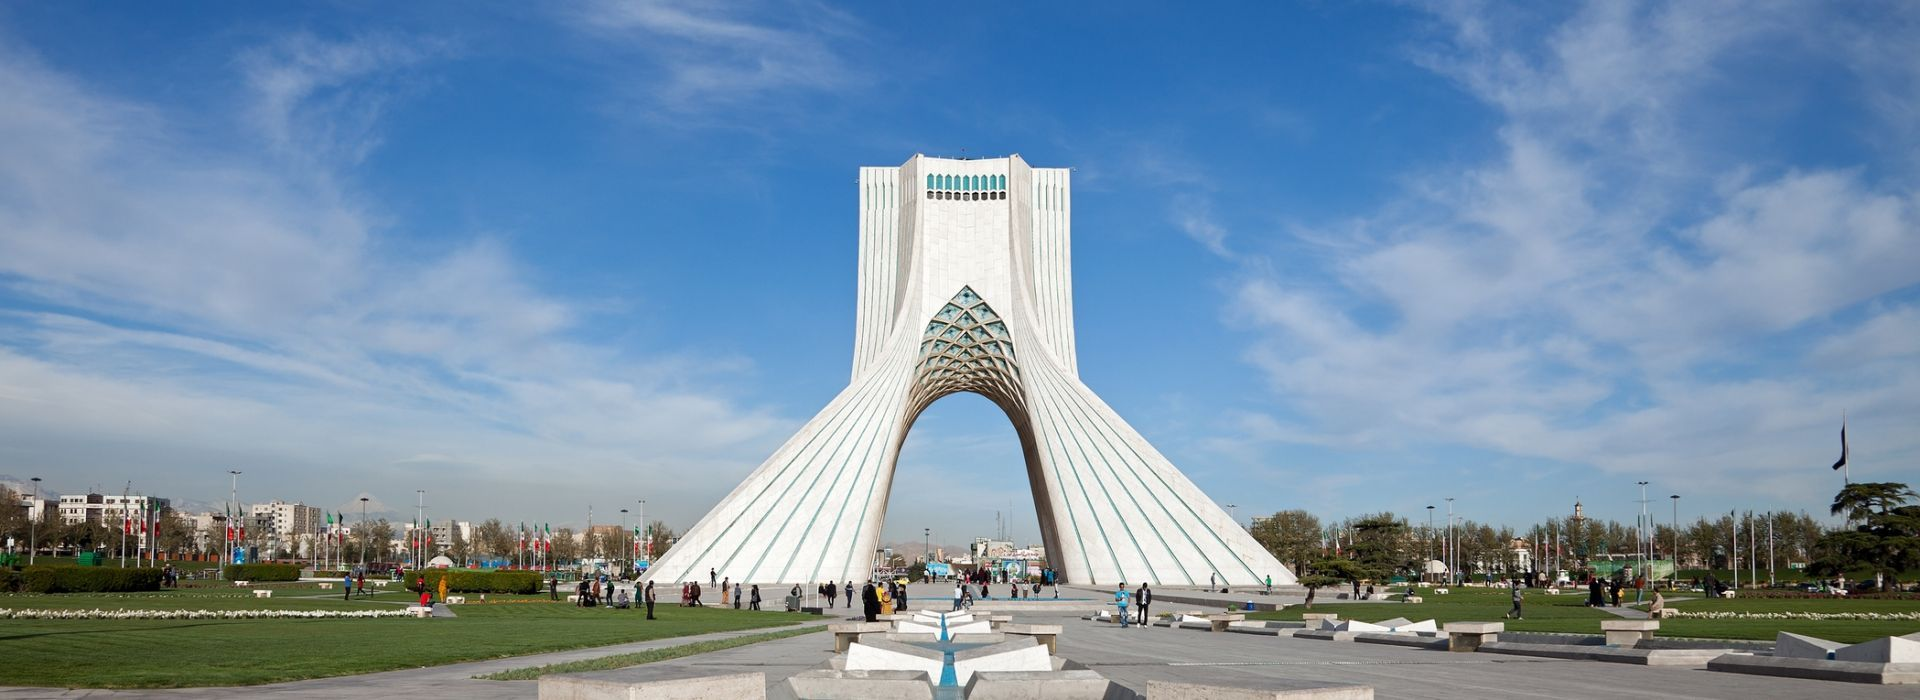 Sightseeing, attractions, culture and history Tours in Iran